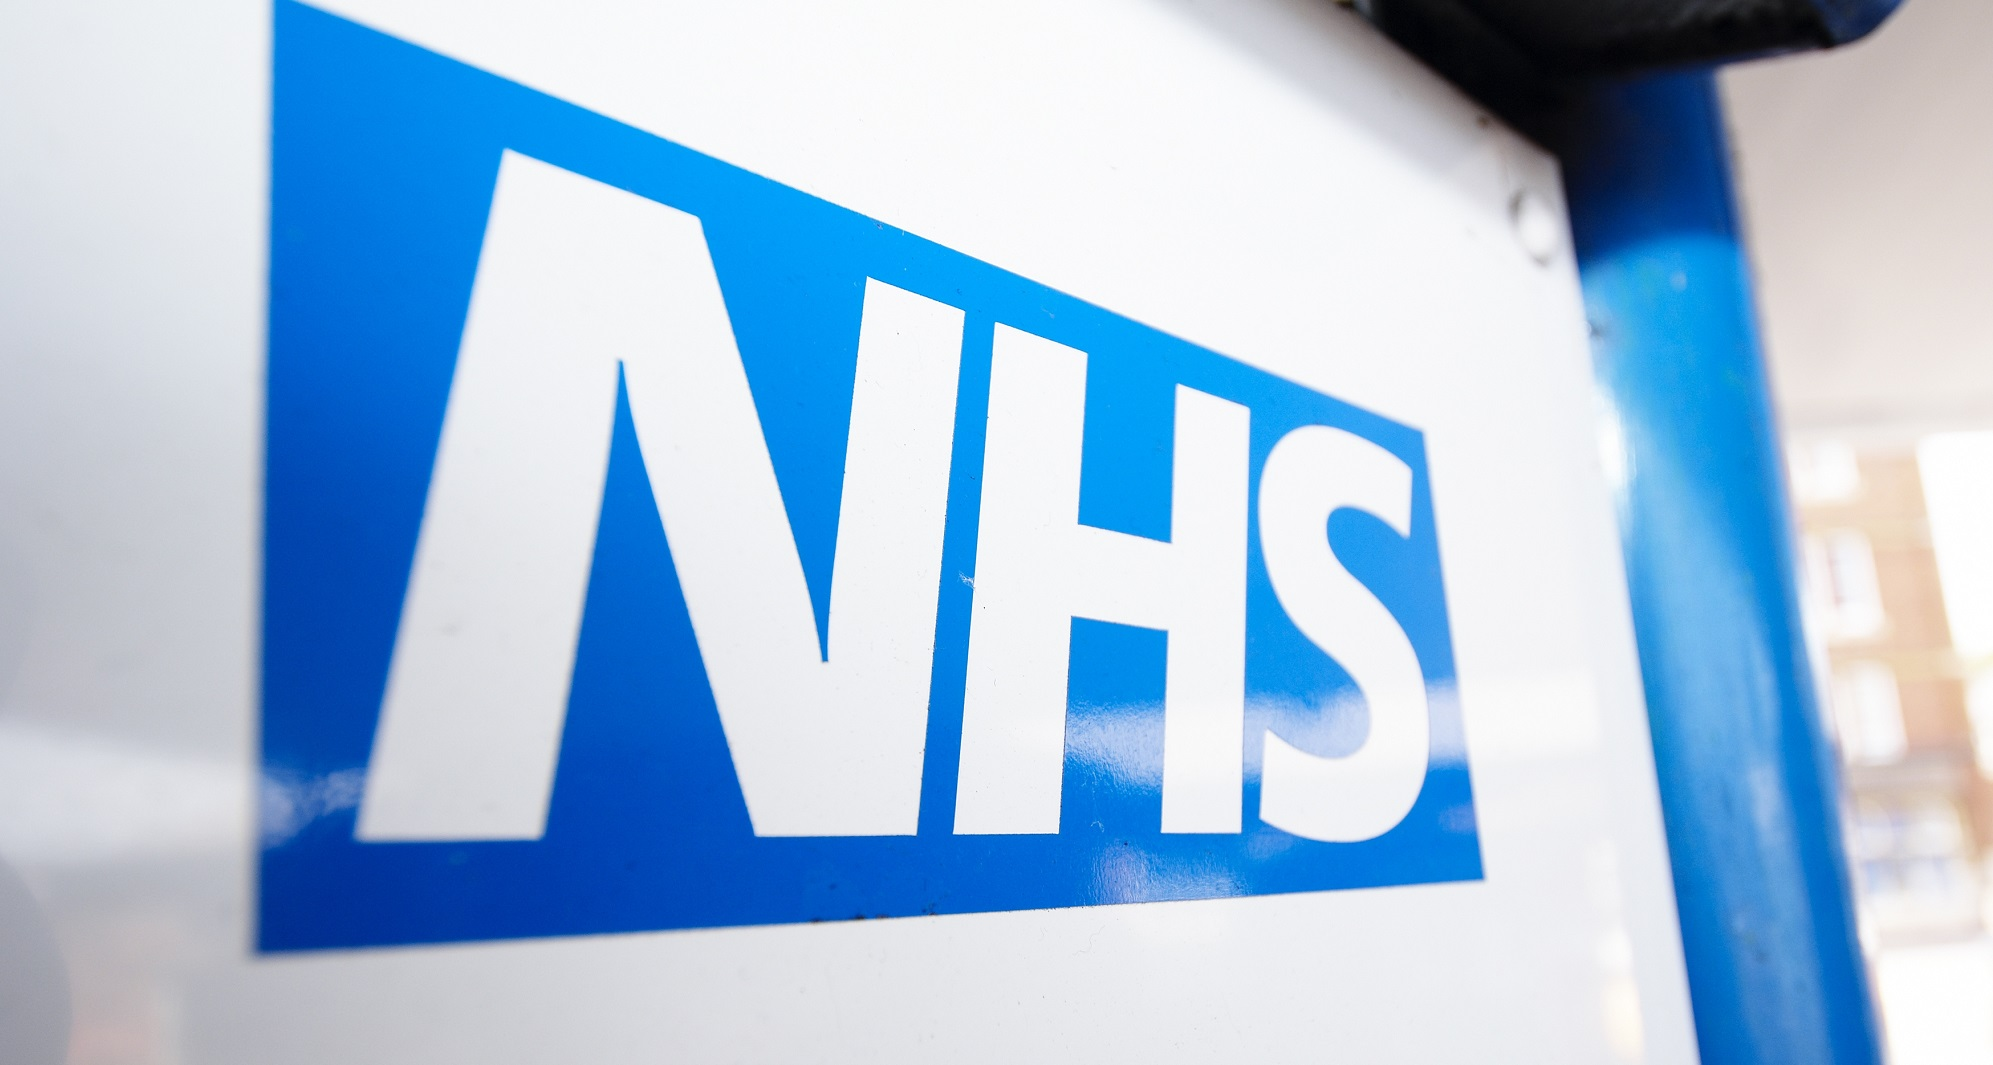 Pharma could take NHS England to court over new delaying tactics